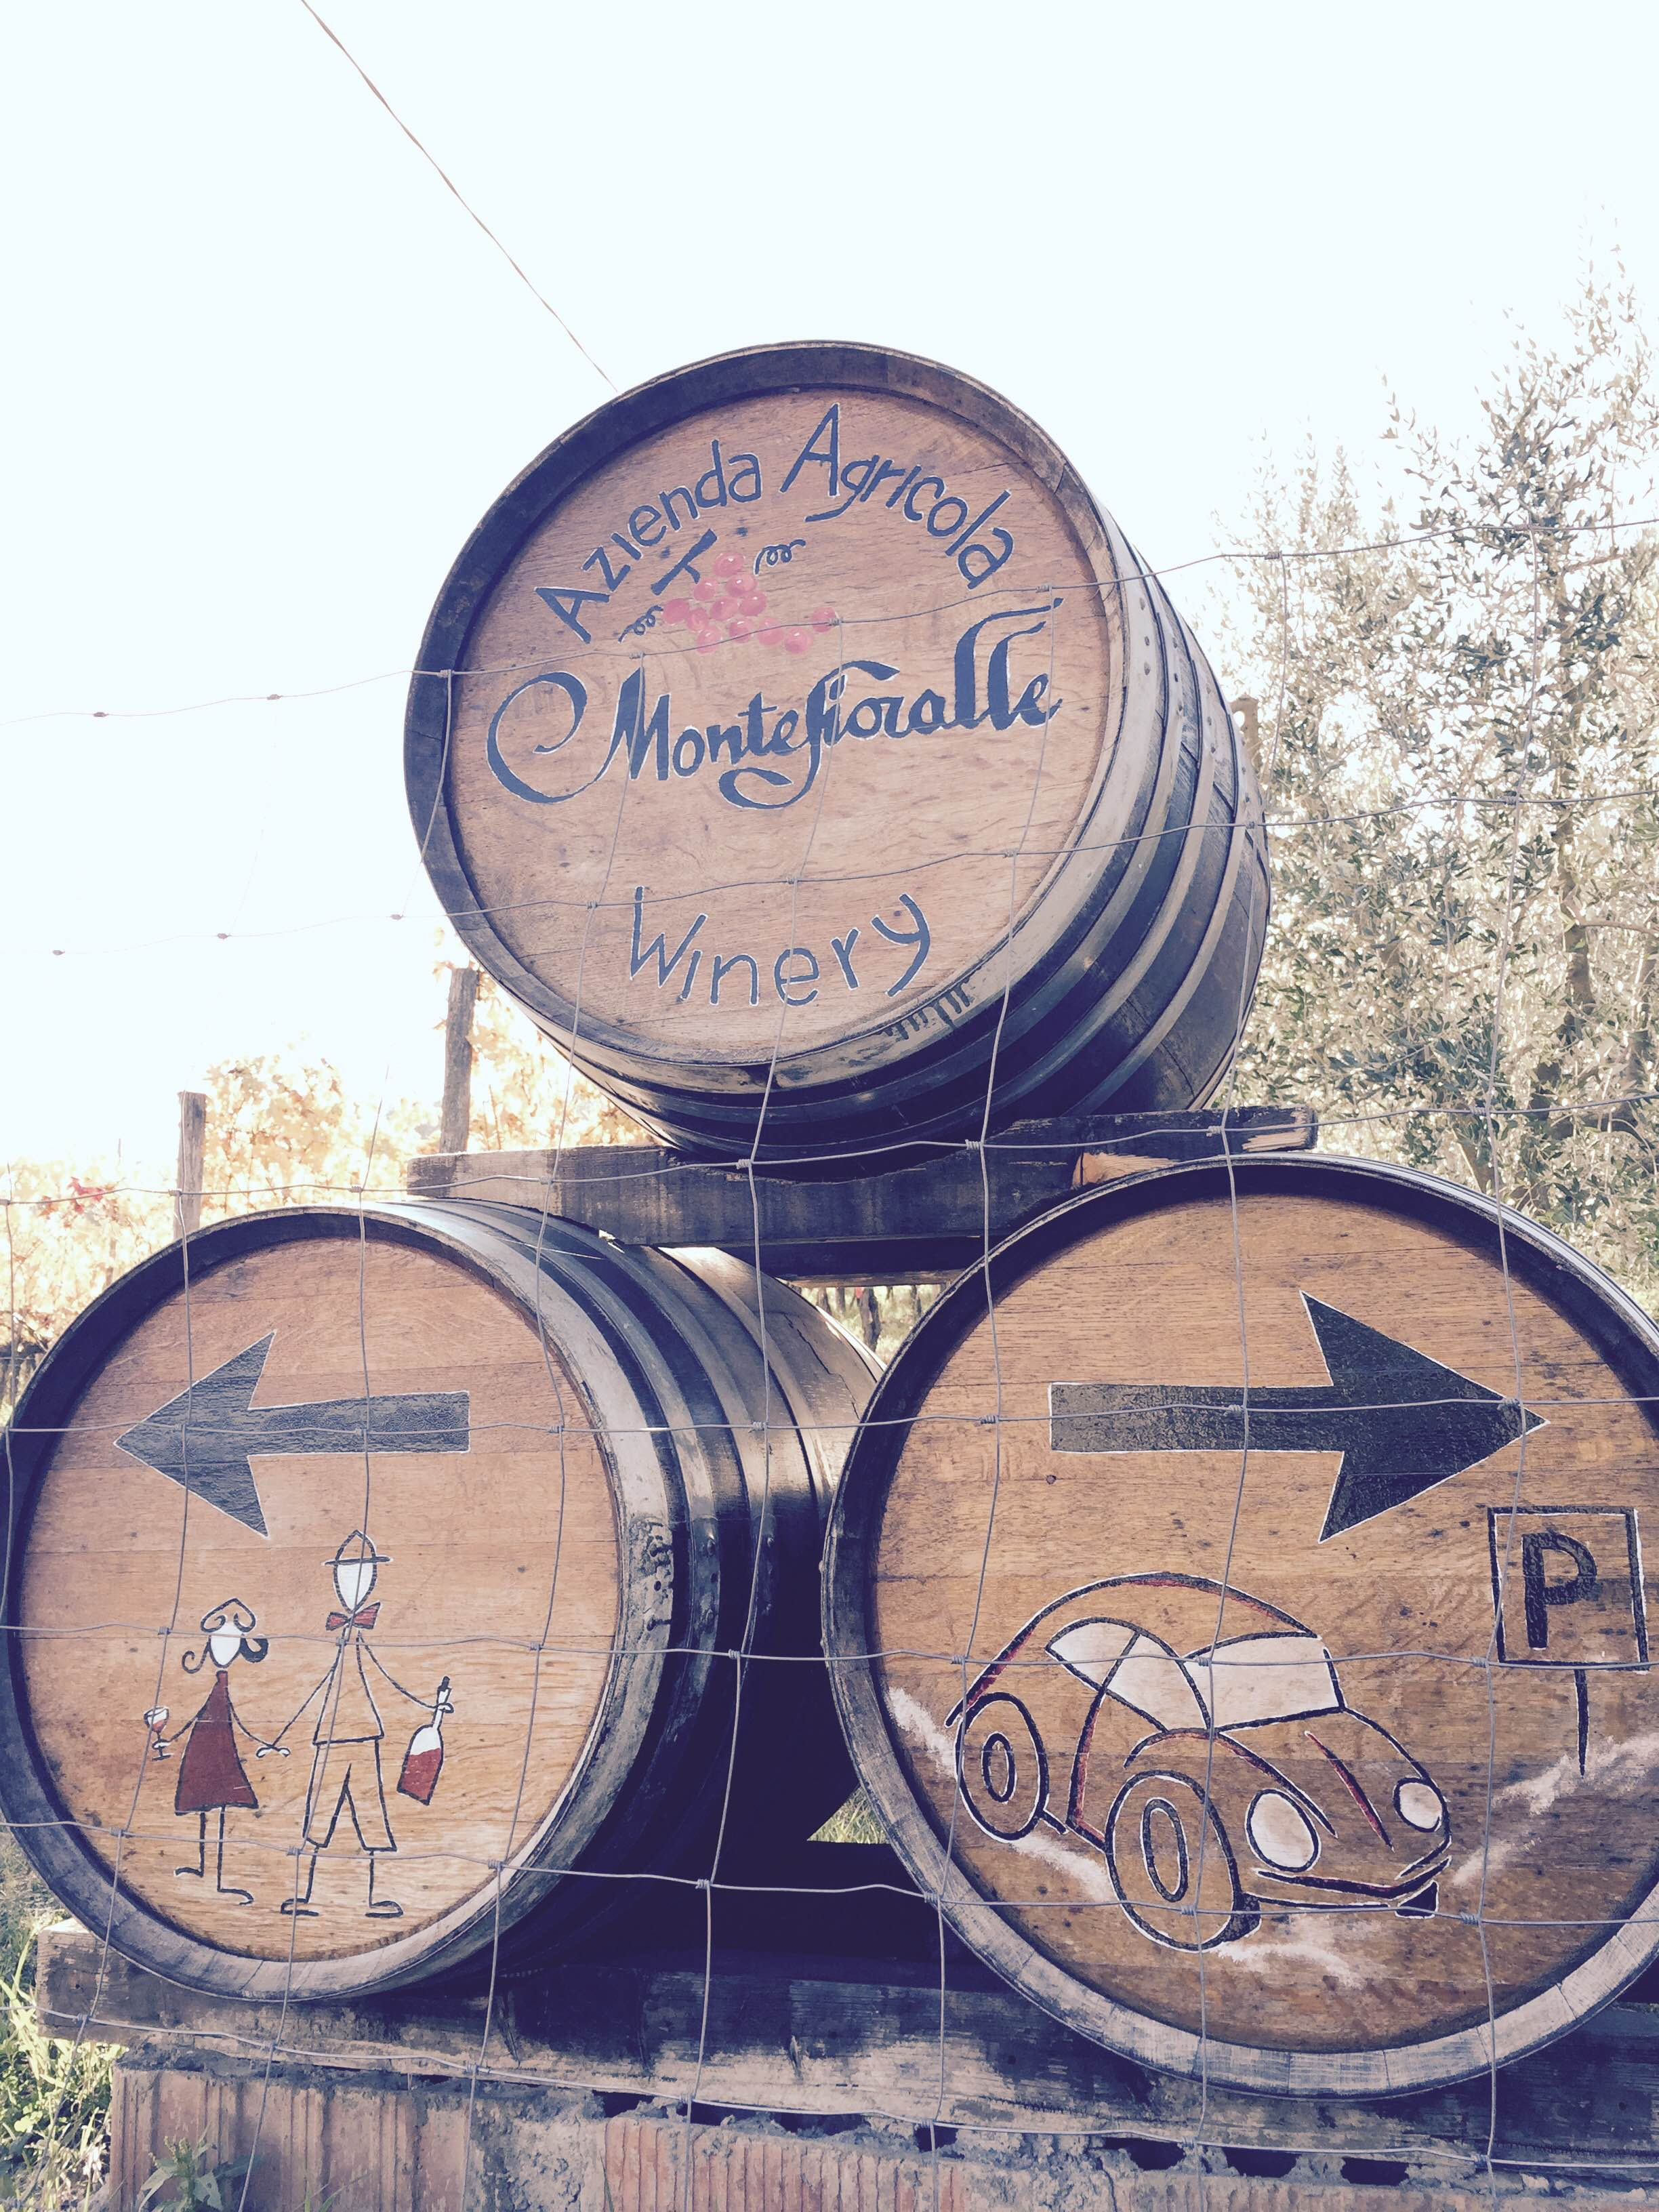 Barrels - Montefioralle vinery